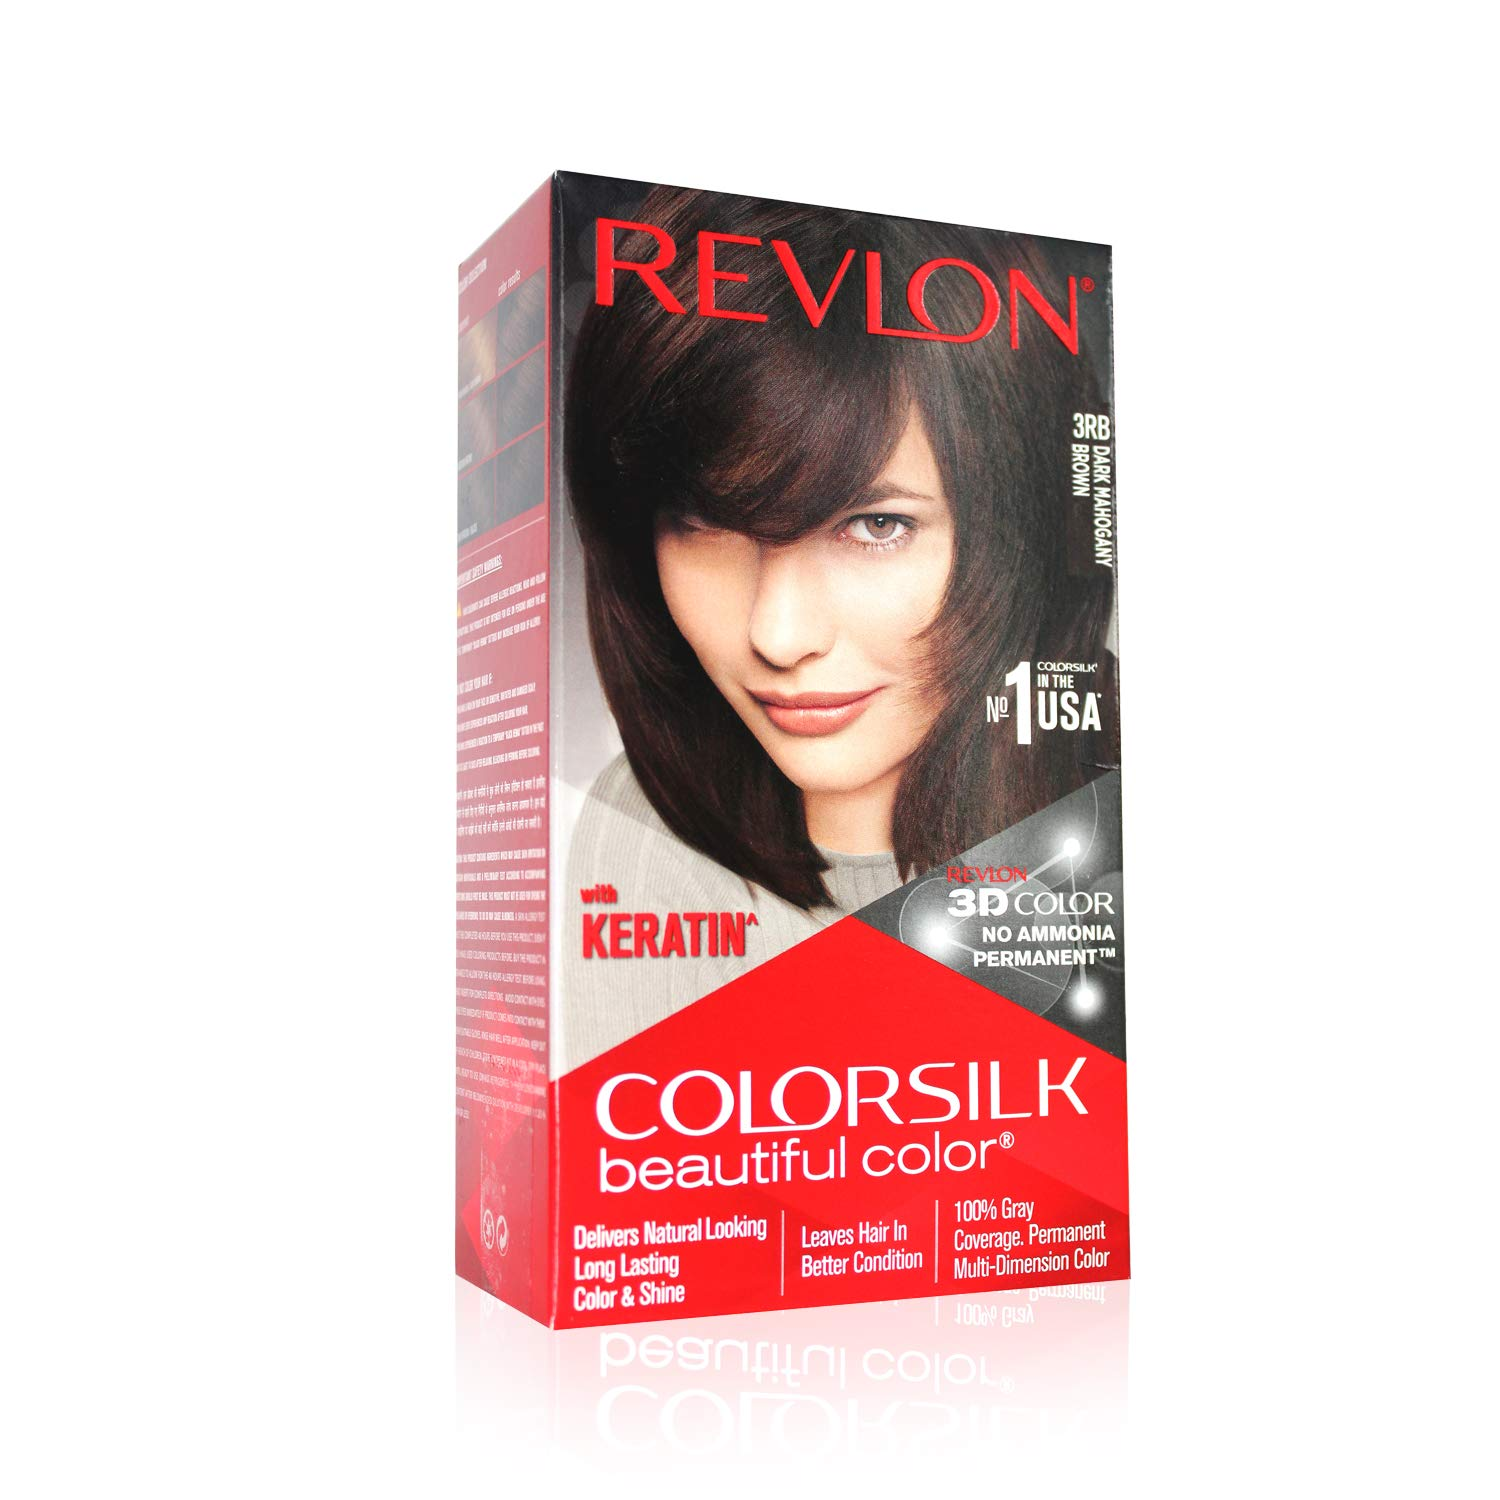 REVLON Color Silk Hair Color